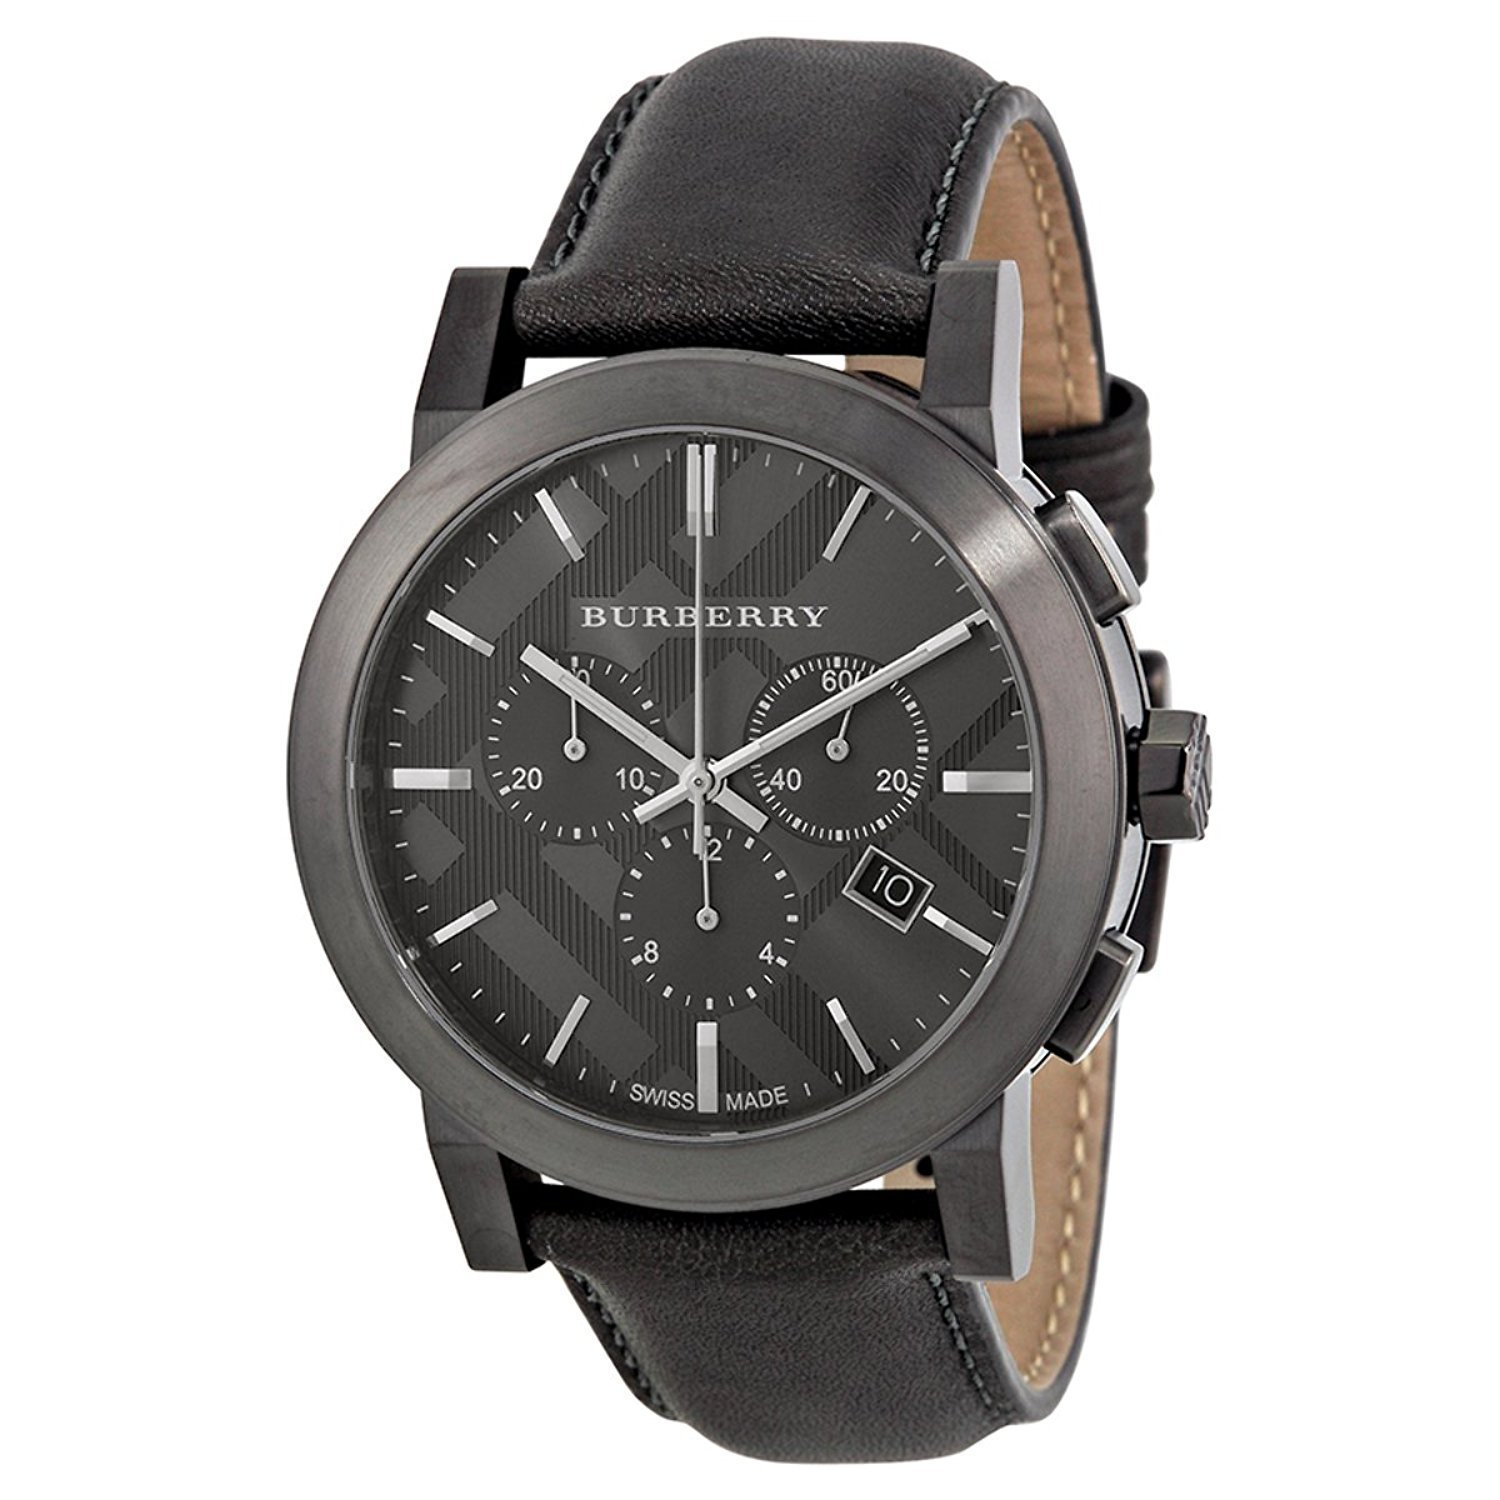 Burberry Men's Watch BU9364